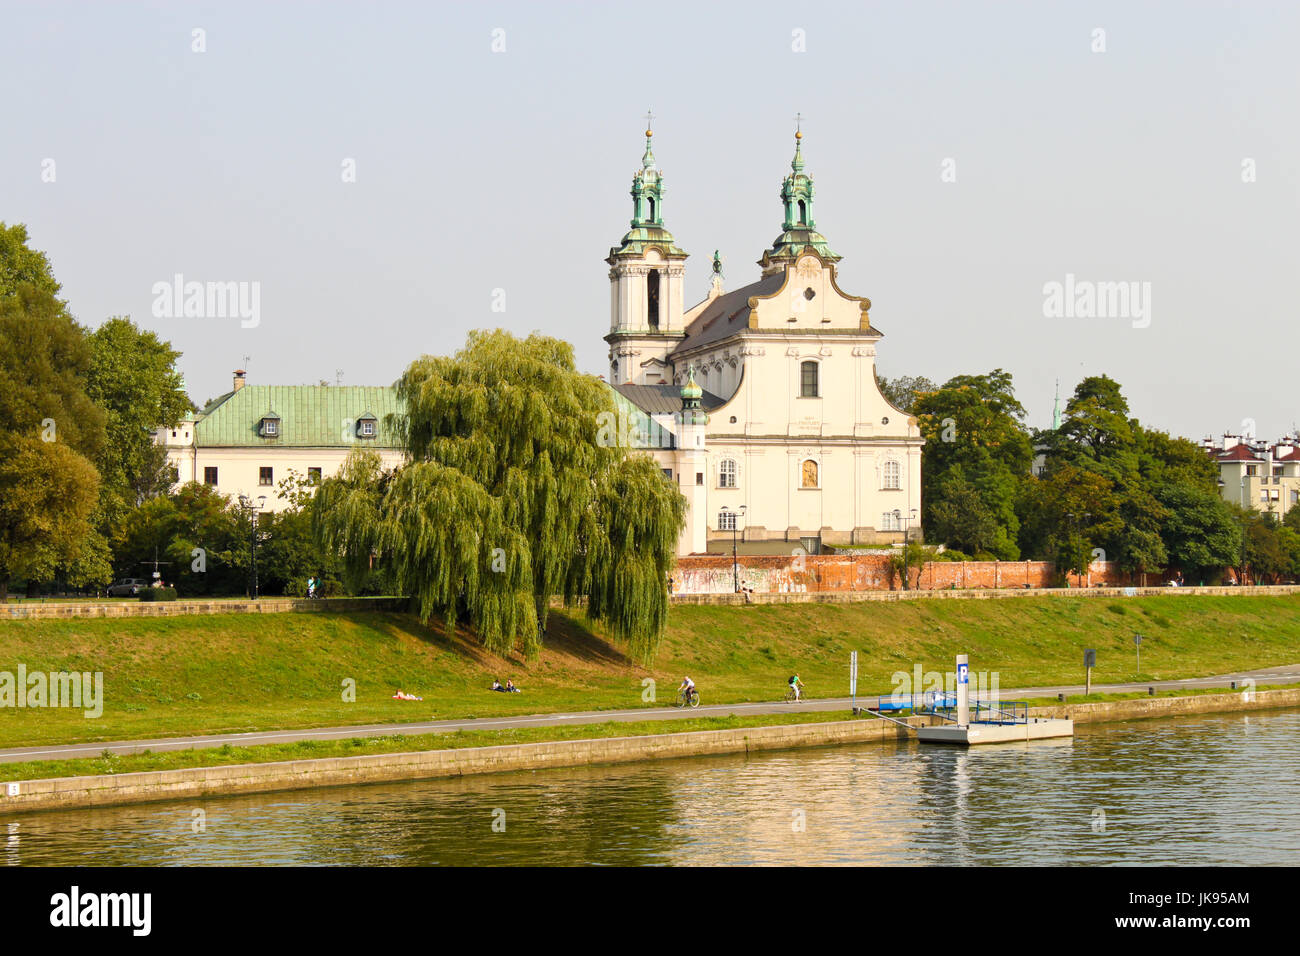 Church of St Michael the Archangel and St Stanislaus Bishop and Martyr and Pauline Fathers Monastery over Vistula - Stock Image